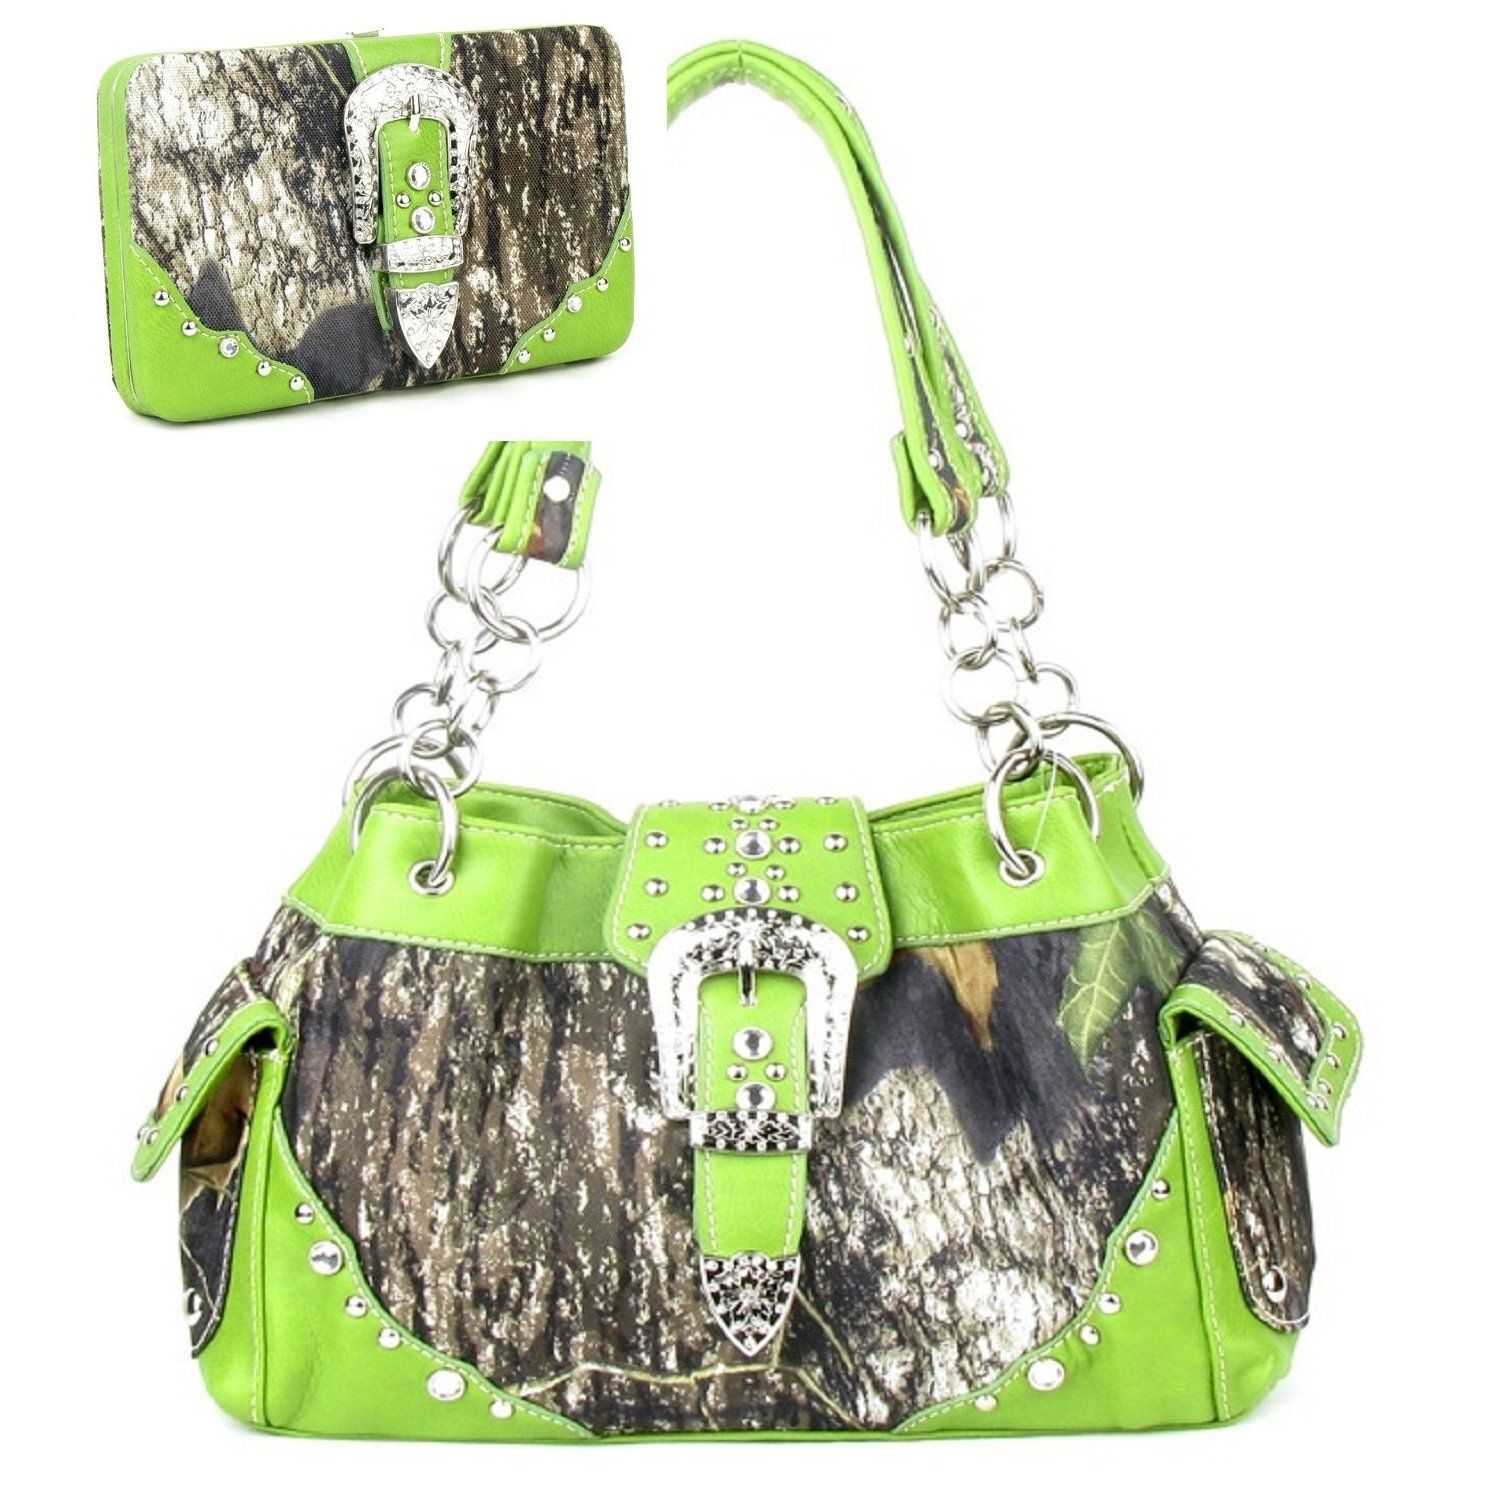 Handbags, Bling & More! Western Green Camouflage Buckle Rhinestone Purse W Matching Wallet : Matching Sets